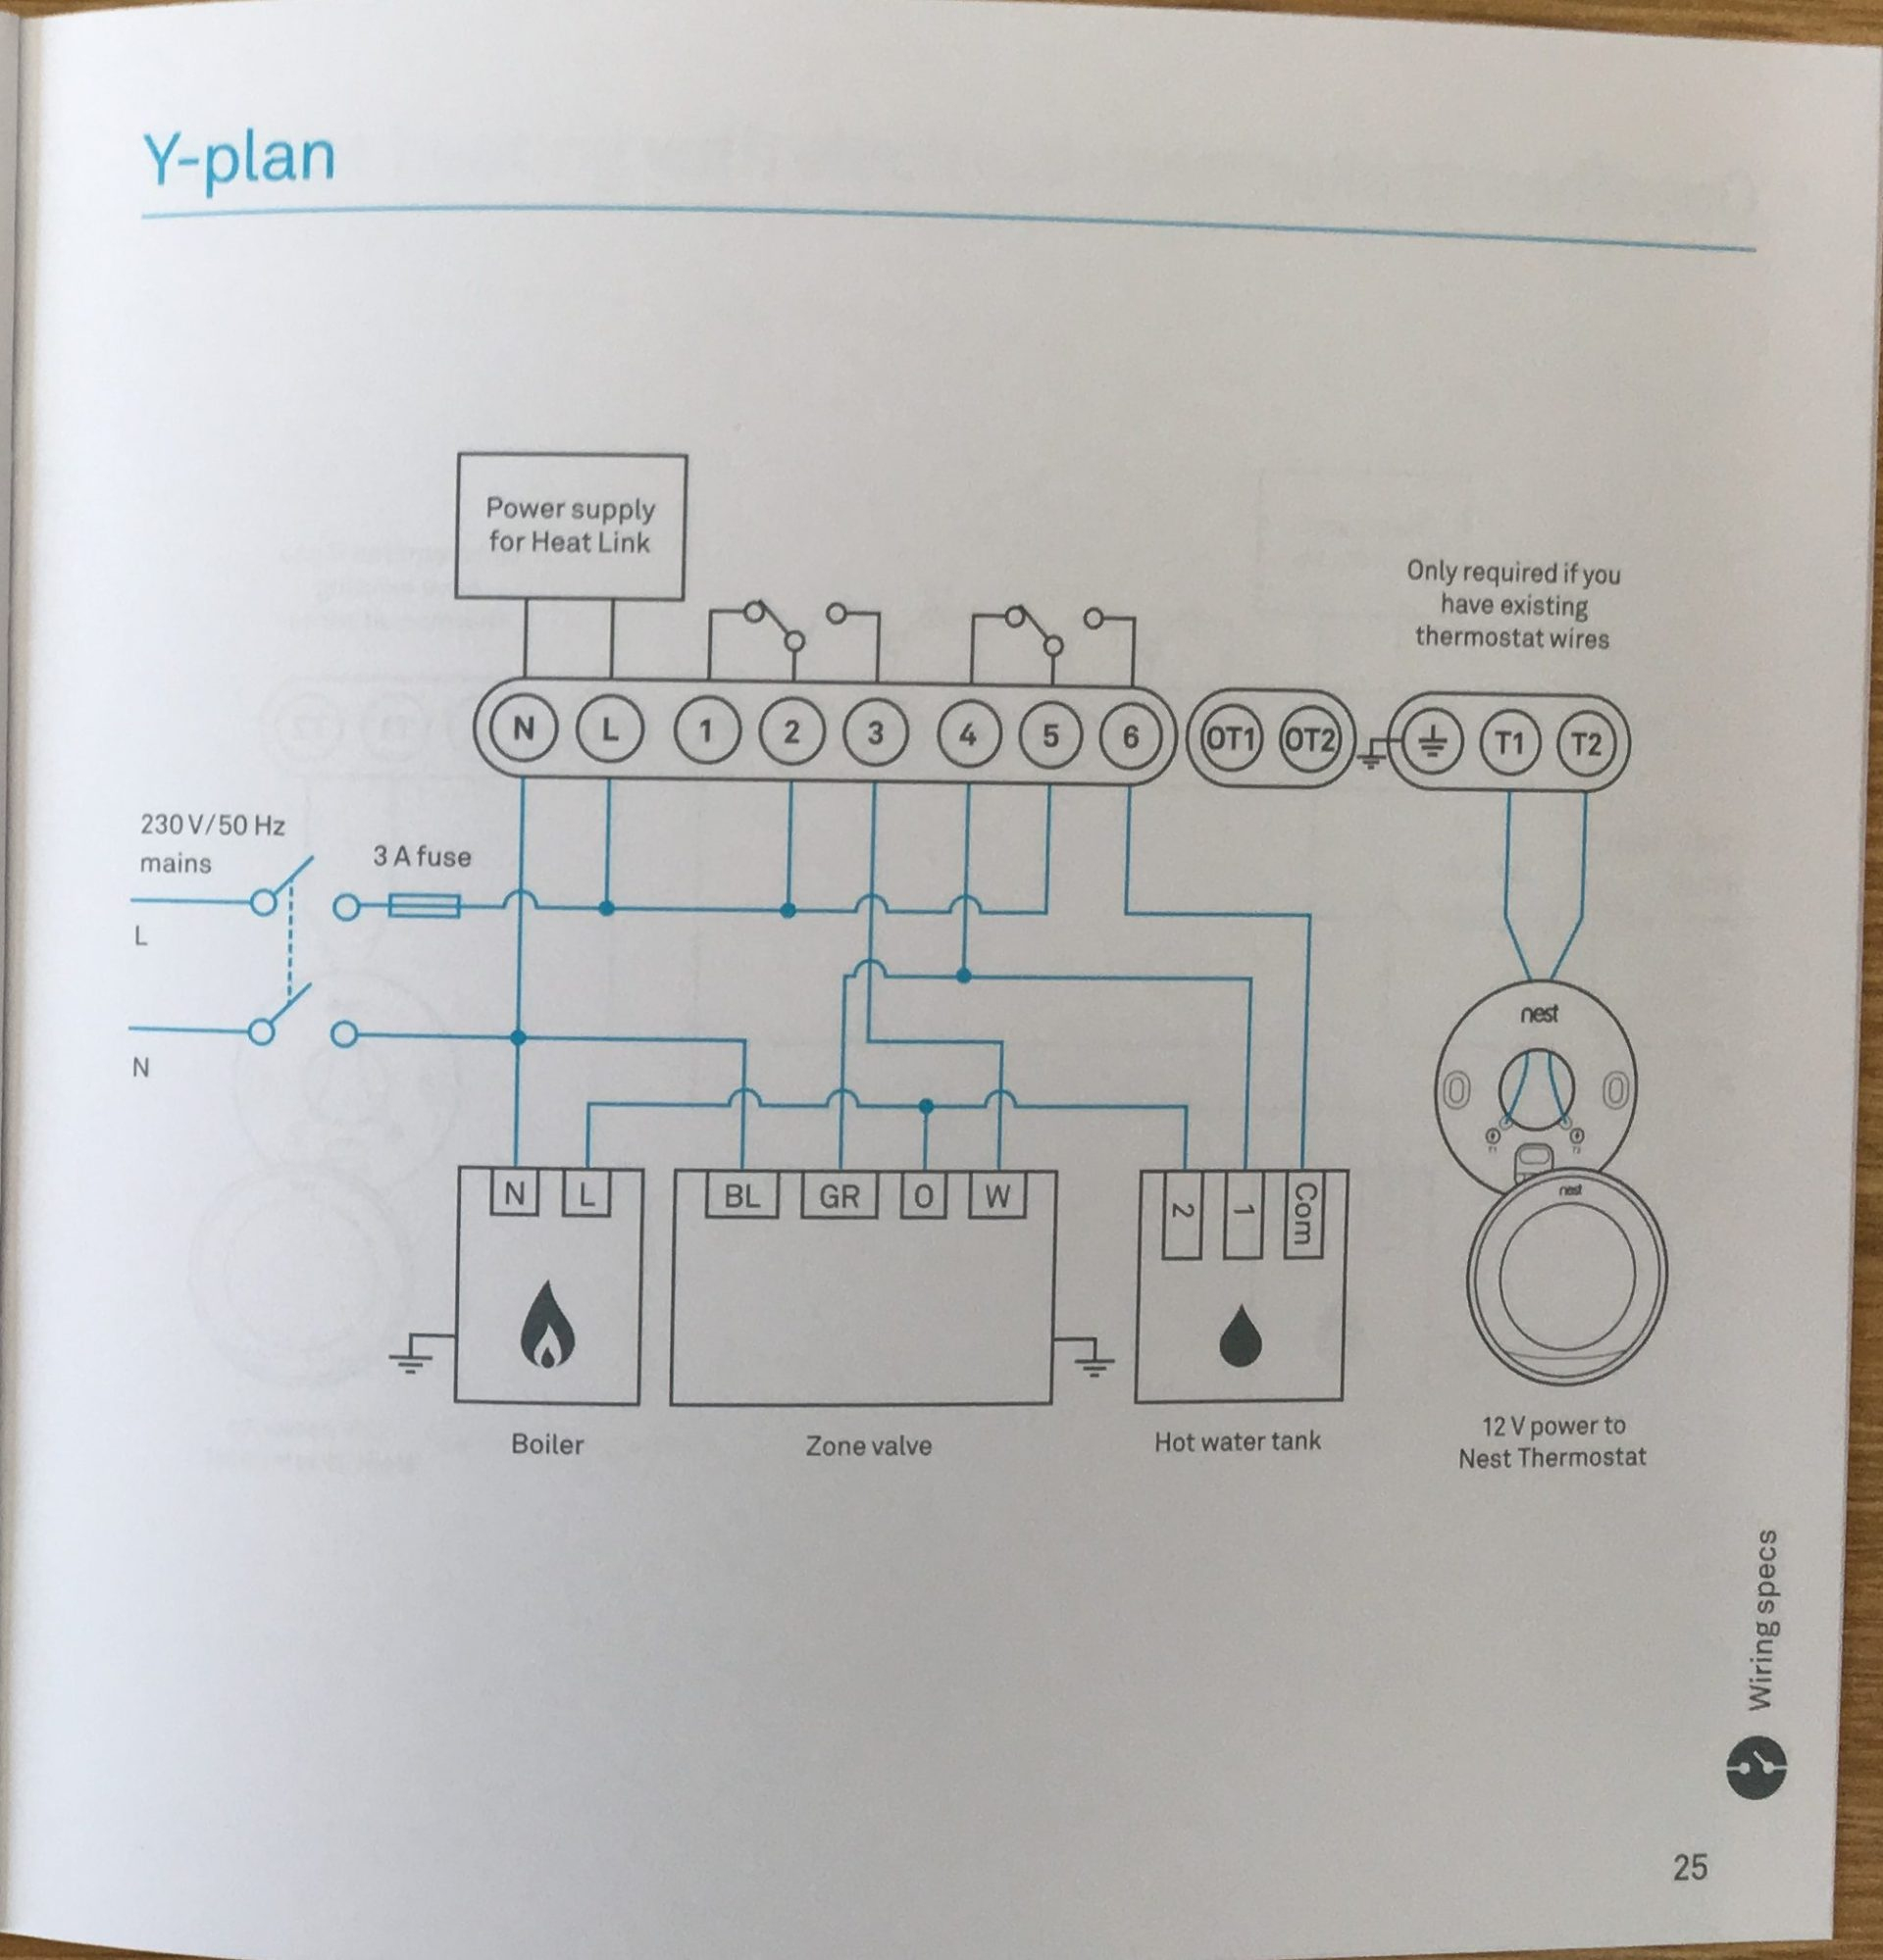 How To Install The Nest Learning Thermostat (3Rd Gen) In A Y-Plan - Nest Hub Wiring Diagram